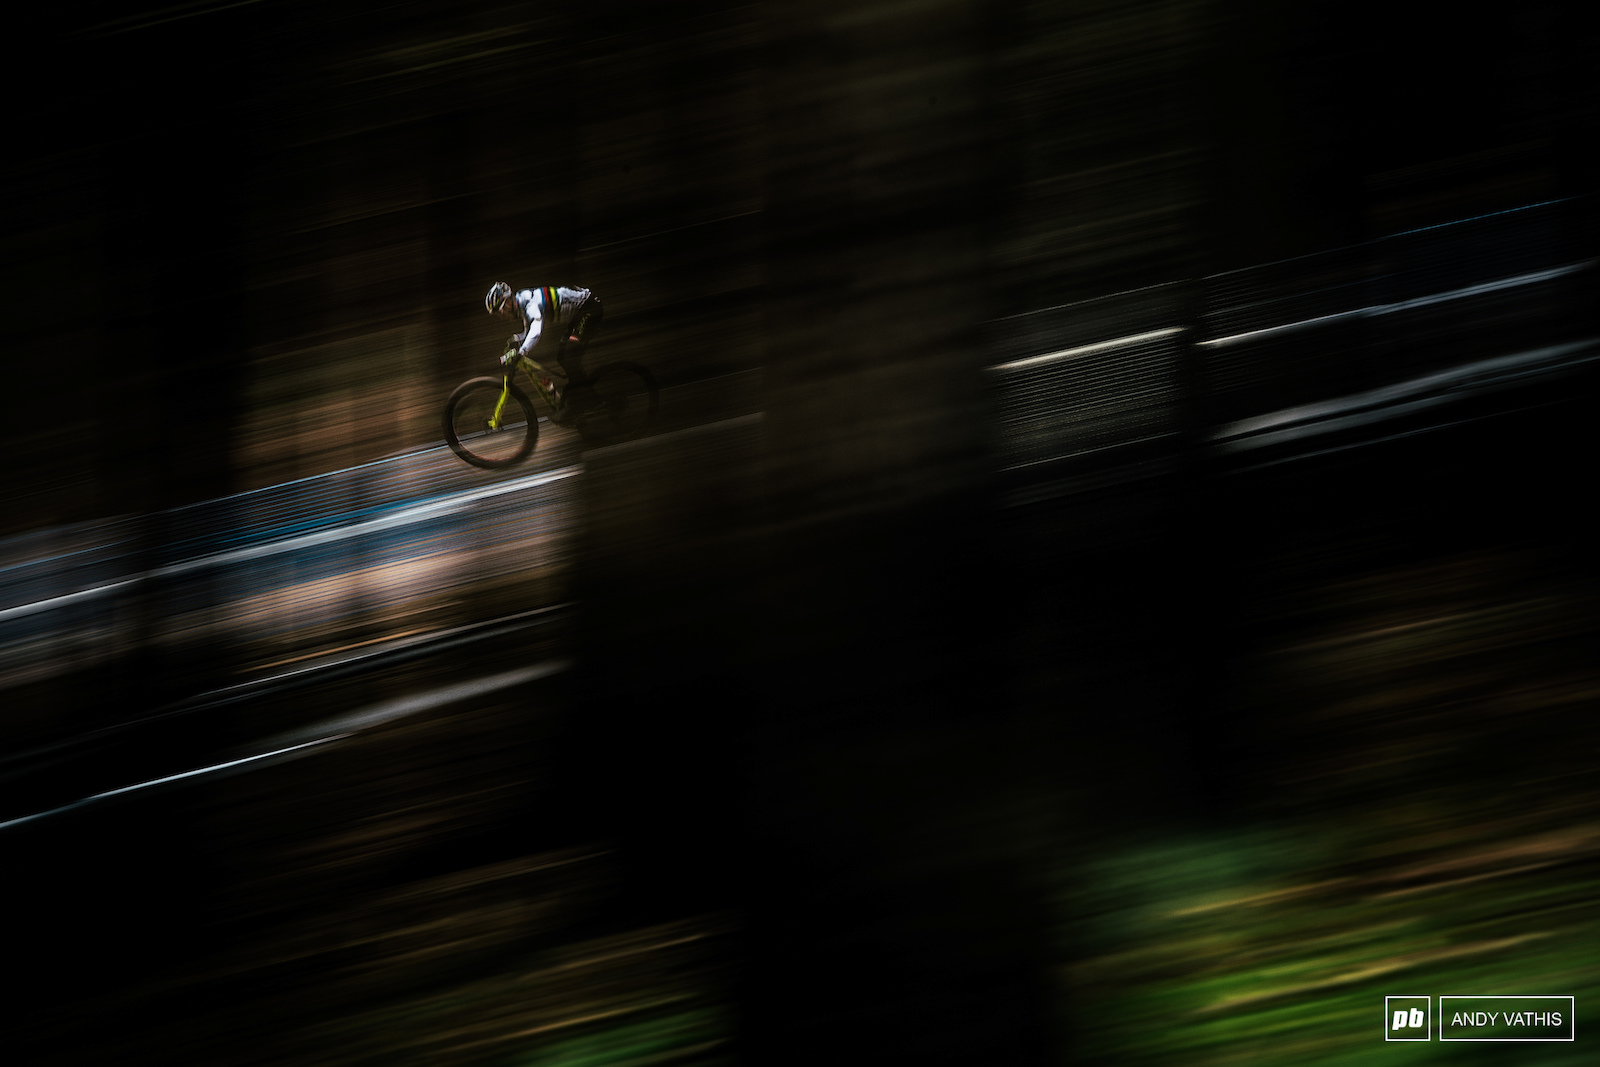 The dense yet neatly spaced forest that is Nove Mesto offers unique sight lines through the trees perfect for pans and pots of light. Nino Schurter making quick work of the BMX section.